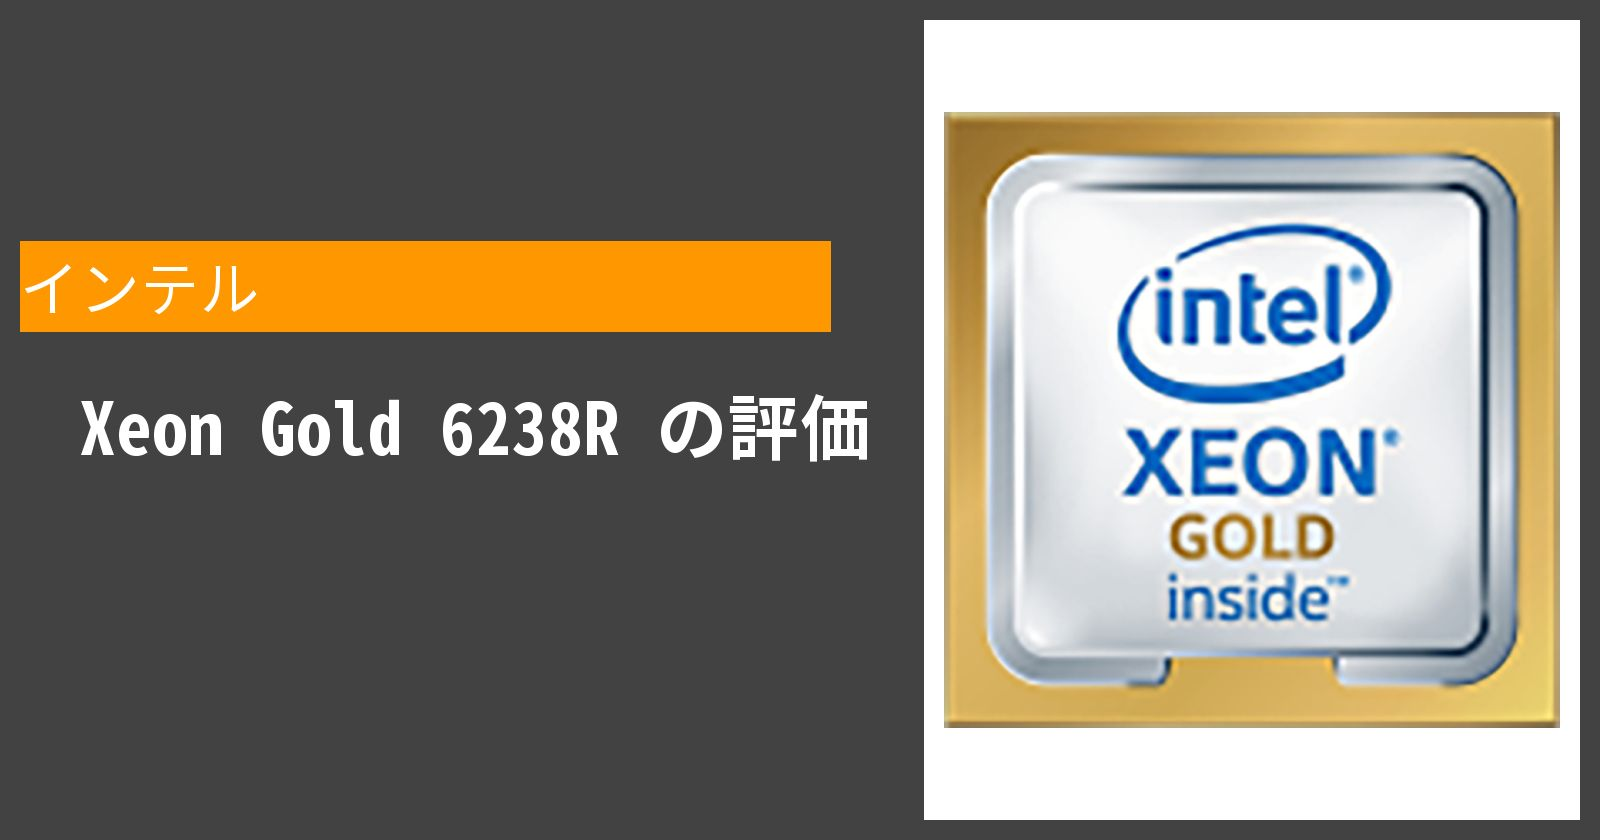 Xeon Gold 6238Rを徹底評価